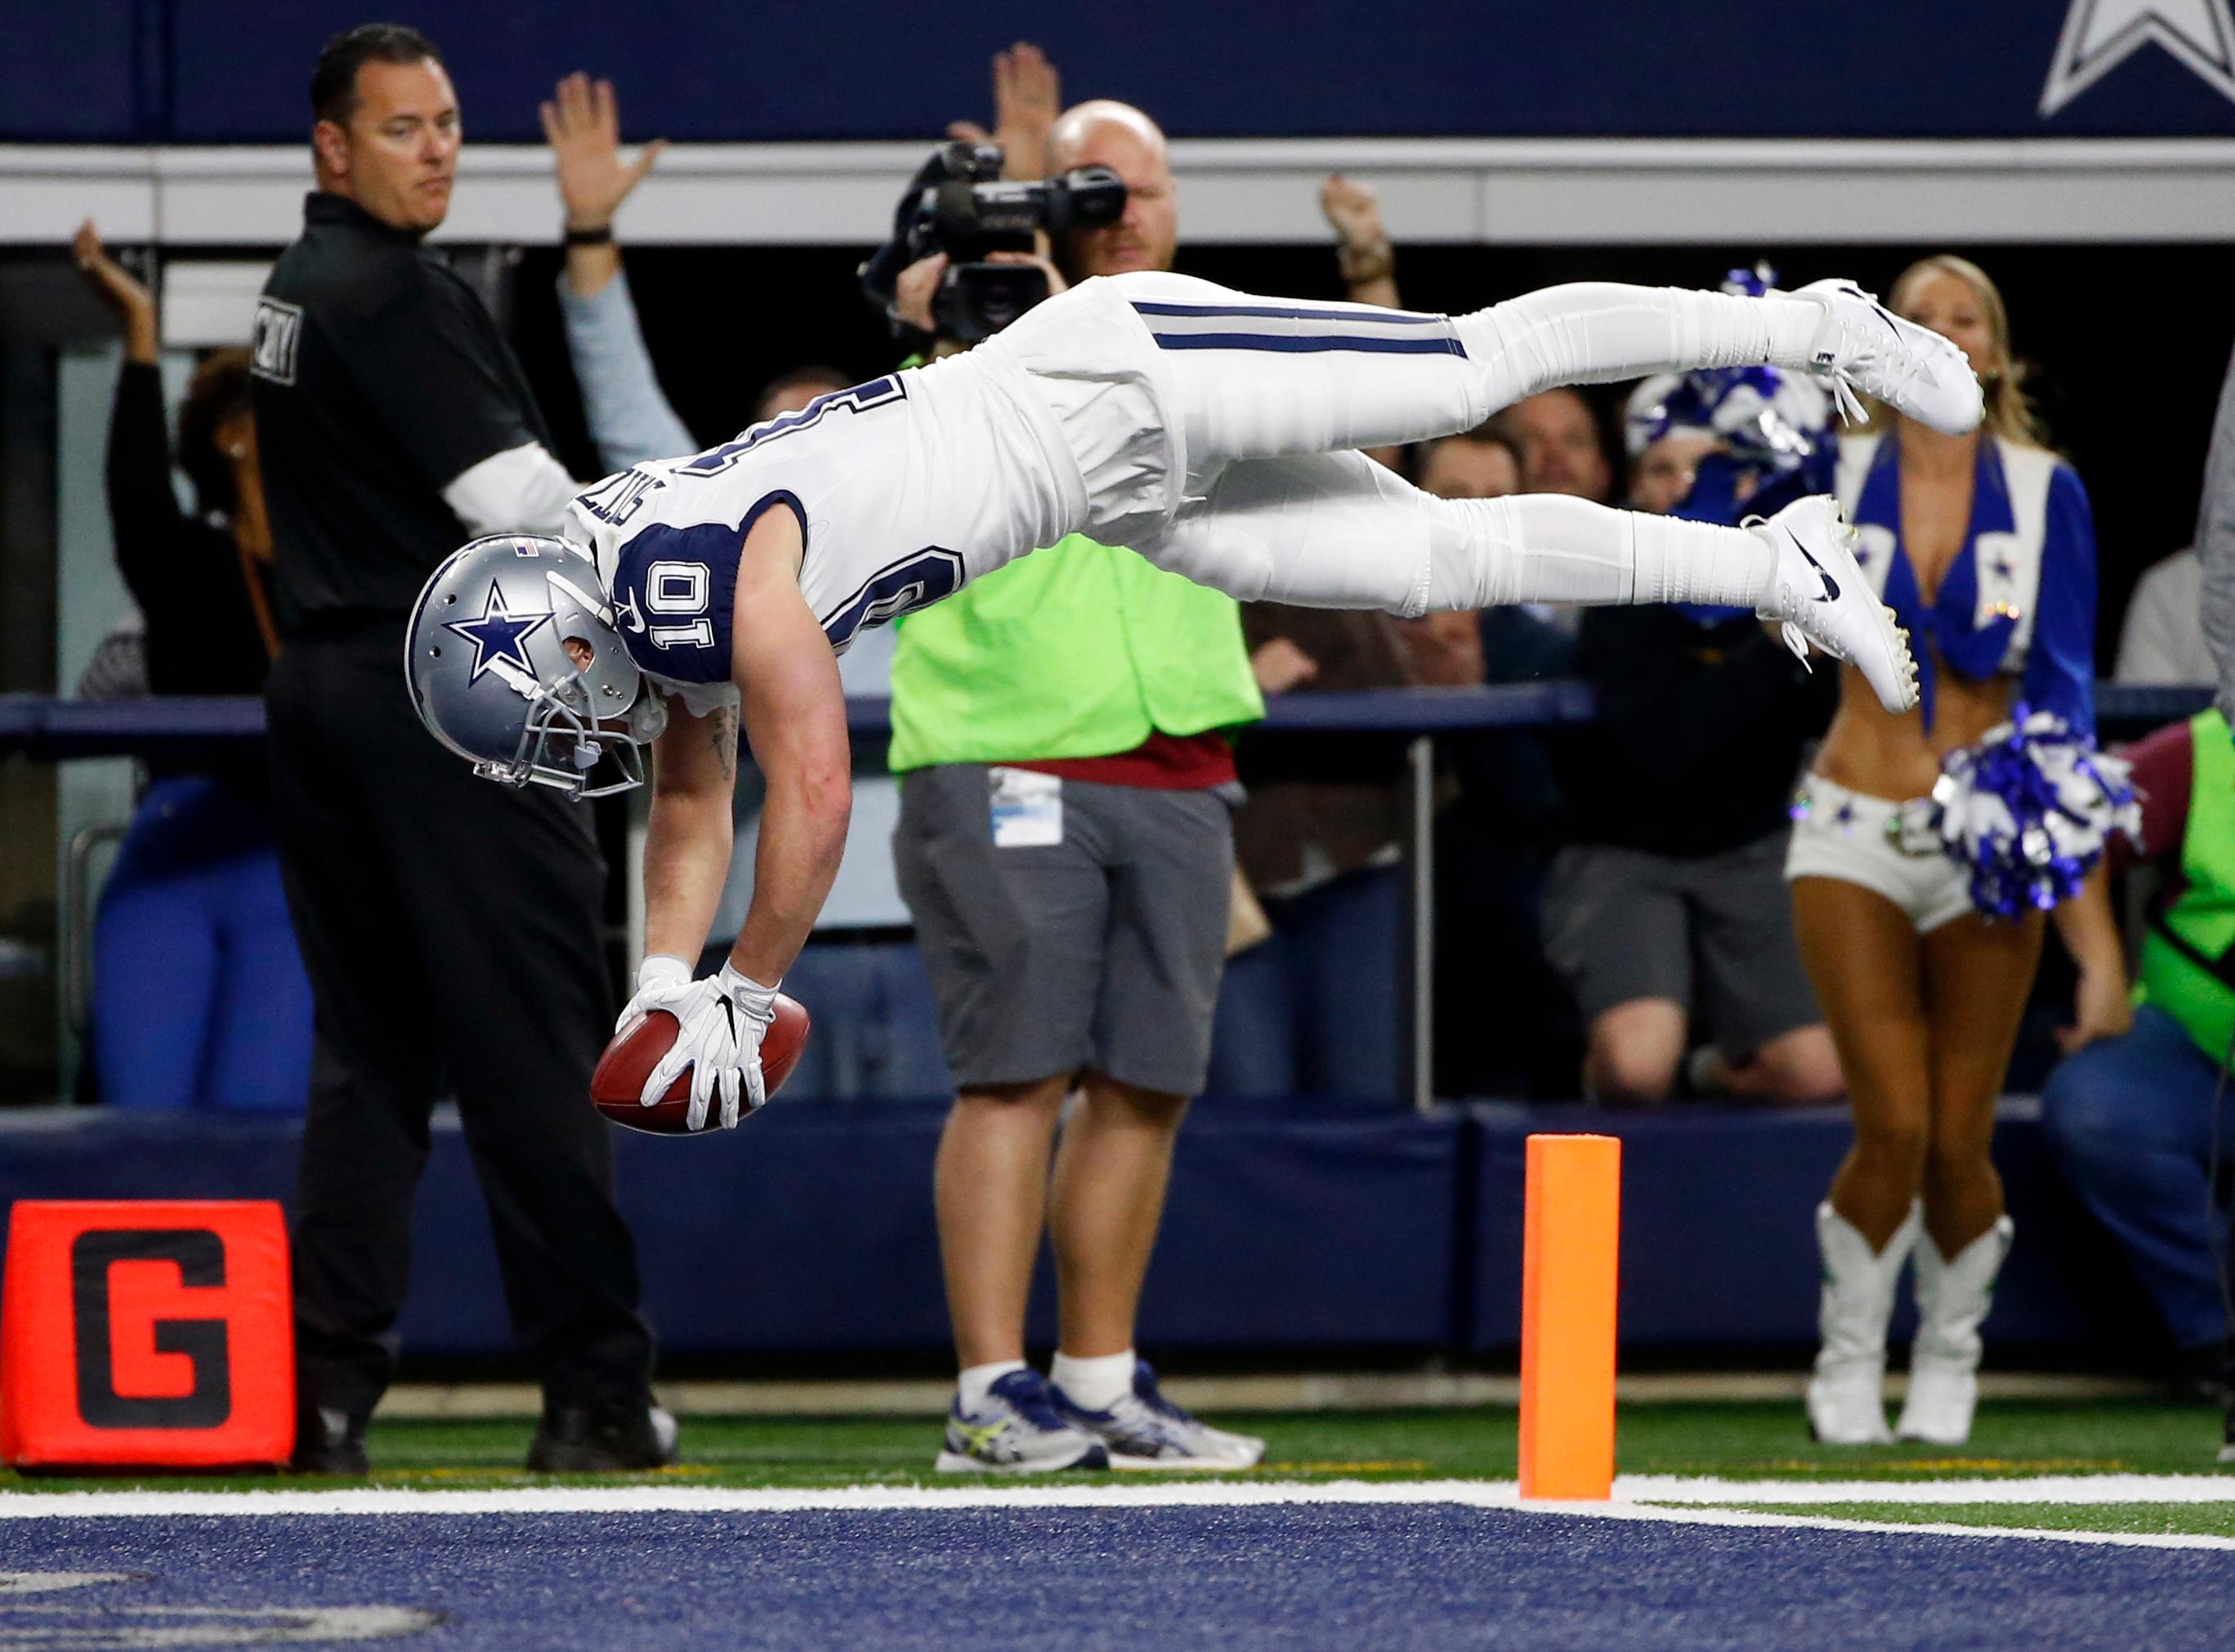 Dallas Cowboys wide receiver Ryan Switzer (10) leaps into the end zone after returning a Washington Redskins punt for a touchdown in the first half of an NFL football game, Thursday, Nov. 30, 2017, in Arlington, Texas. (AP Photo/Ron Jenkins)